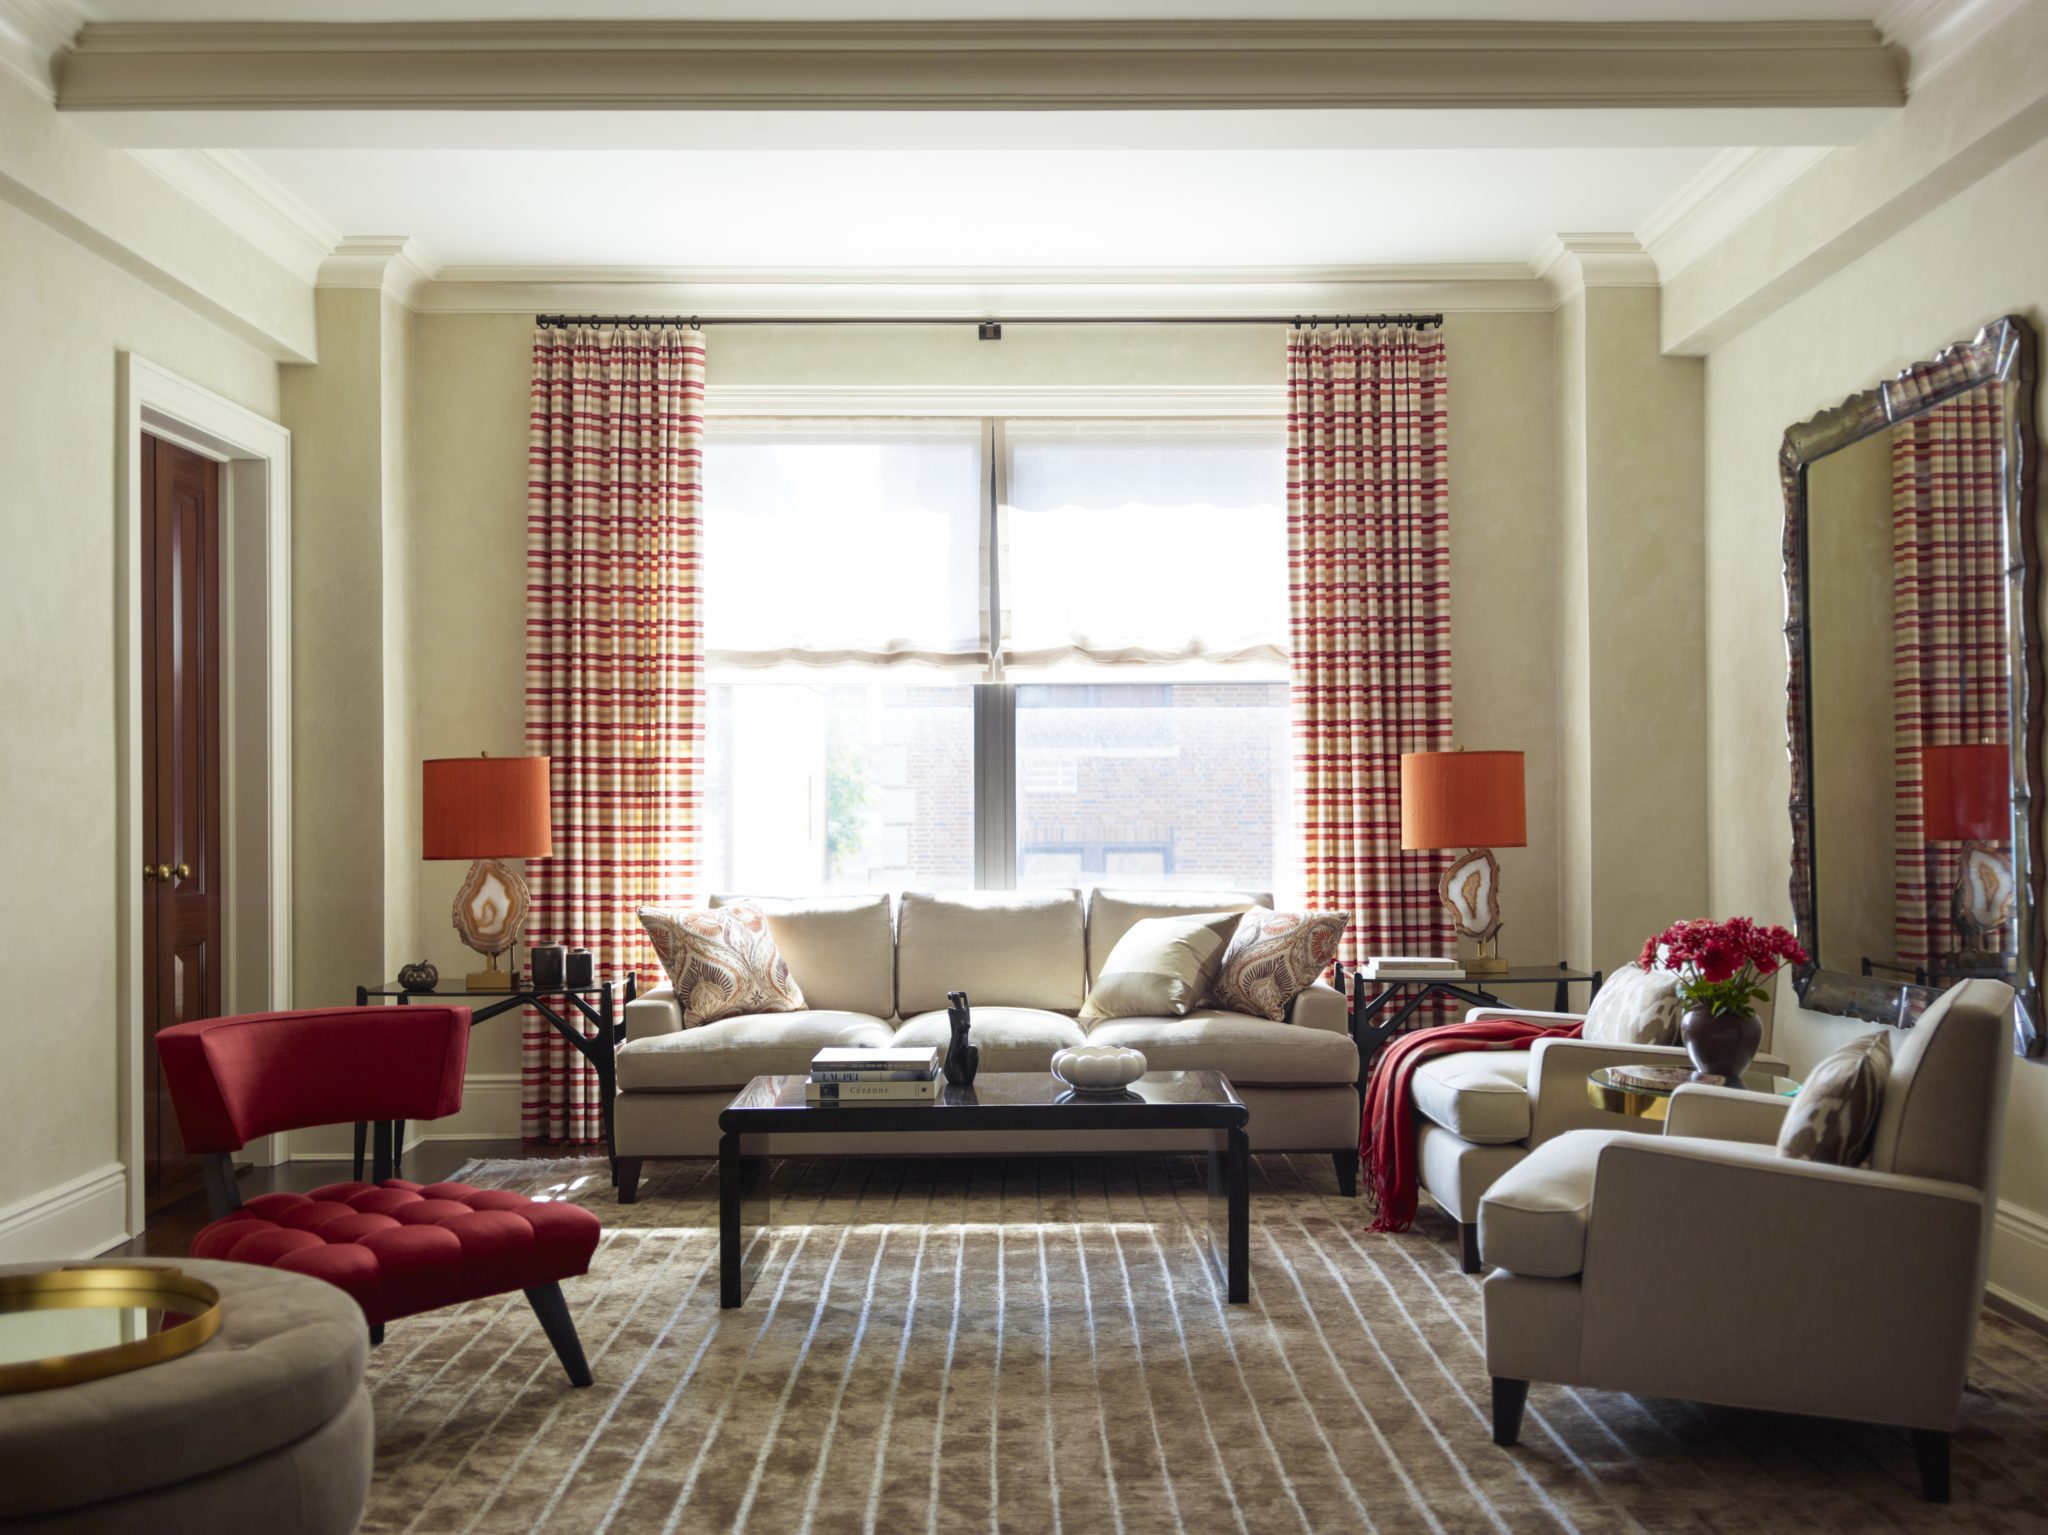 Interior design by Mendelson Group, Inc